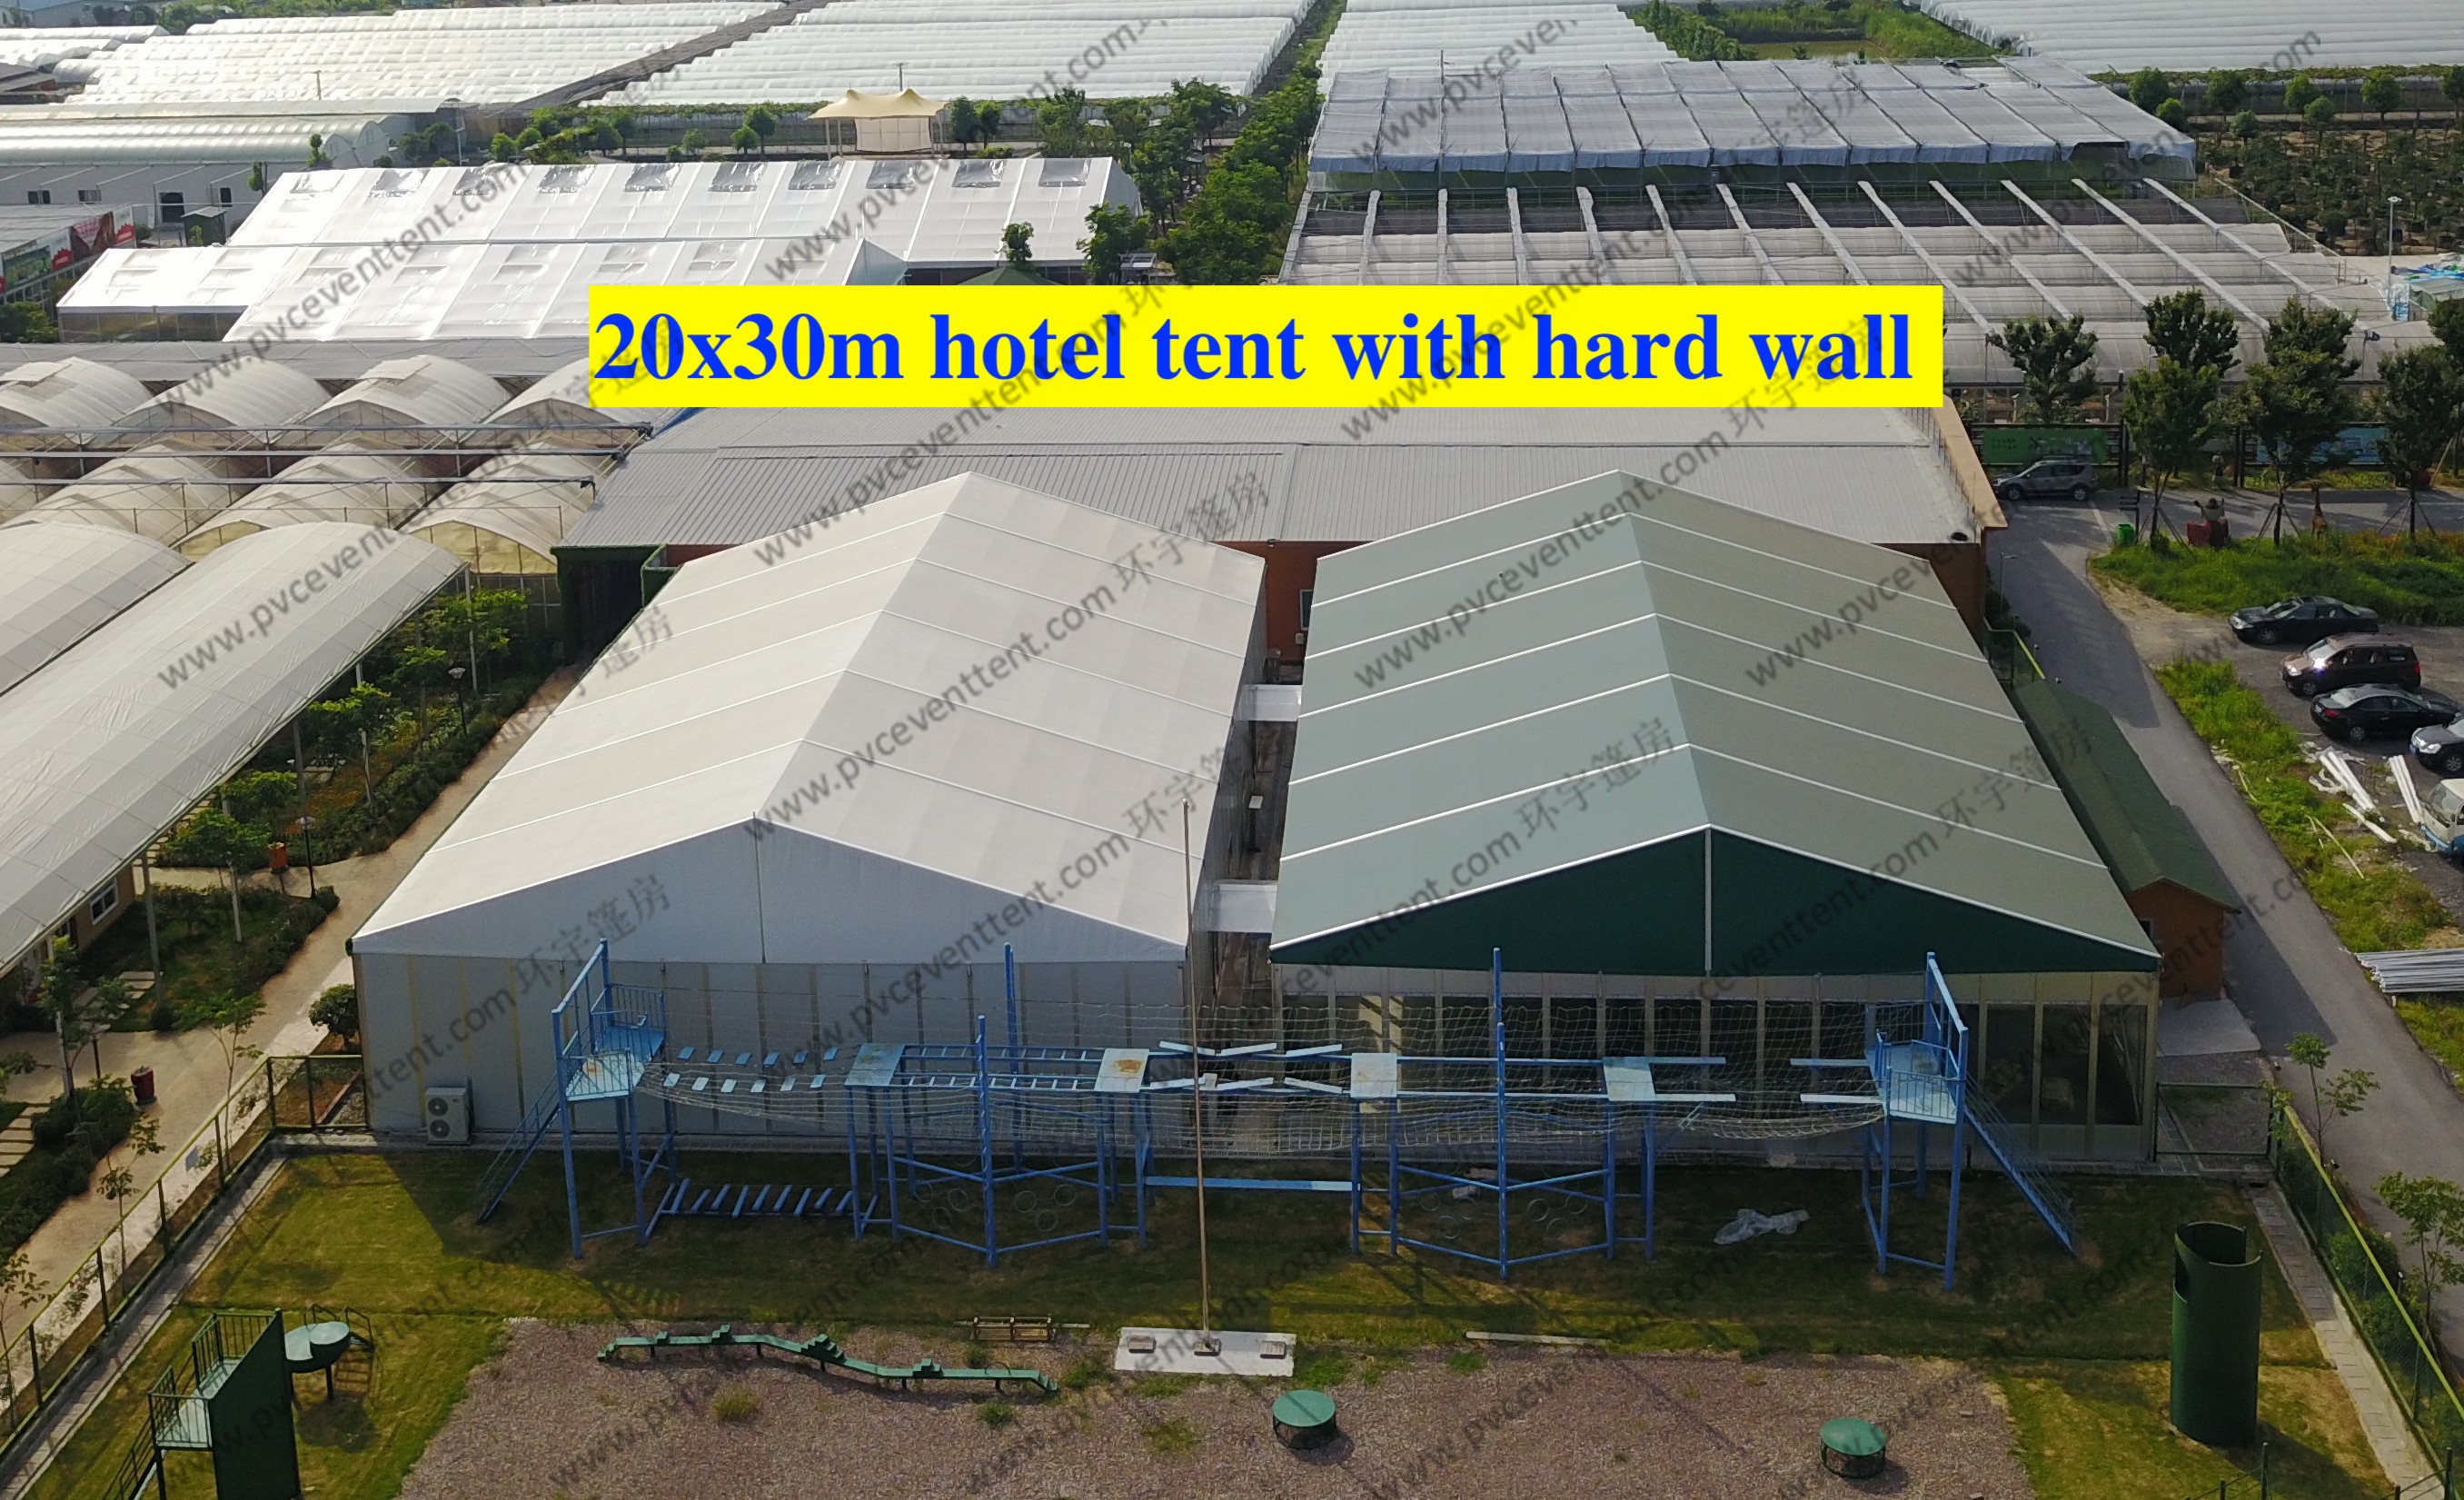 Waterproof Largest Marquee Tent 20*30M Aluminum Frame Structure For Outdoor Event as Hotel